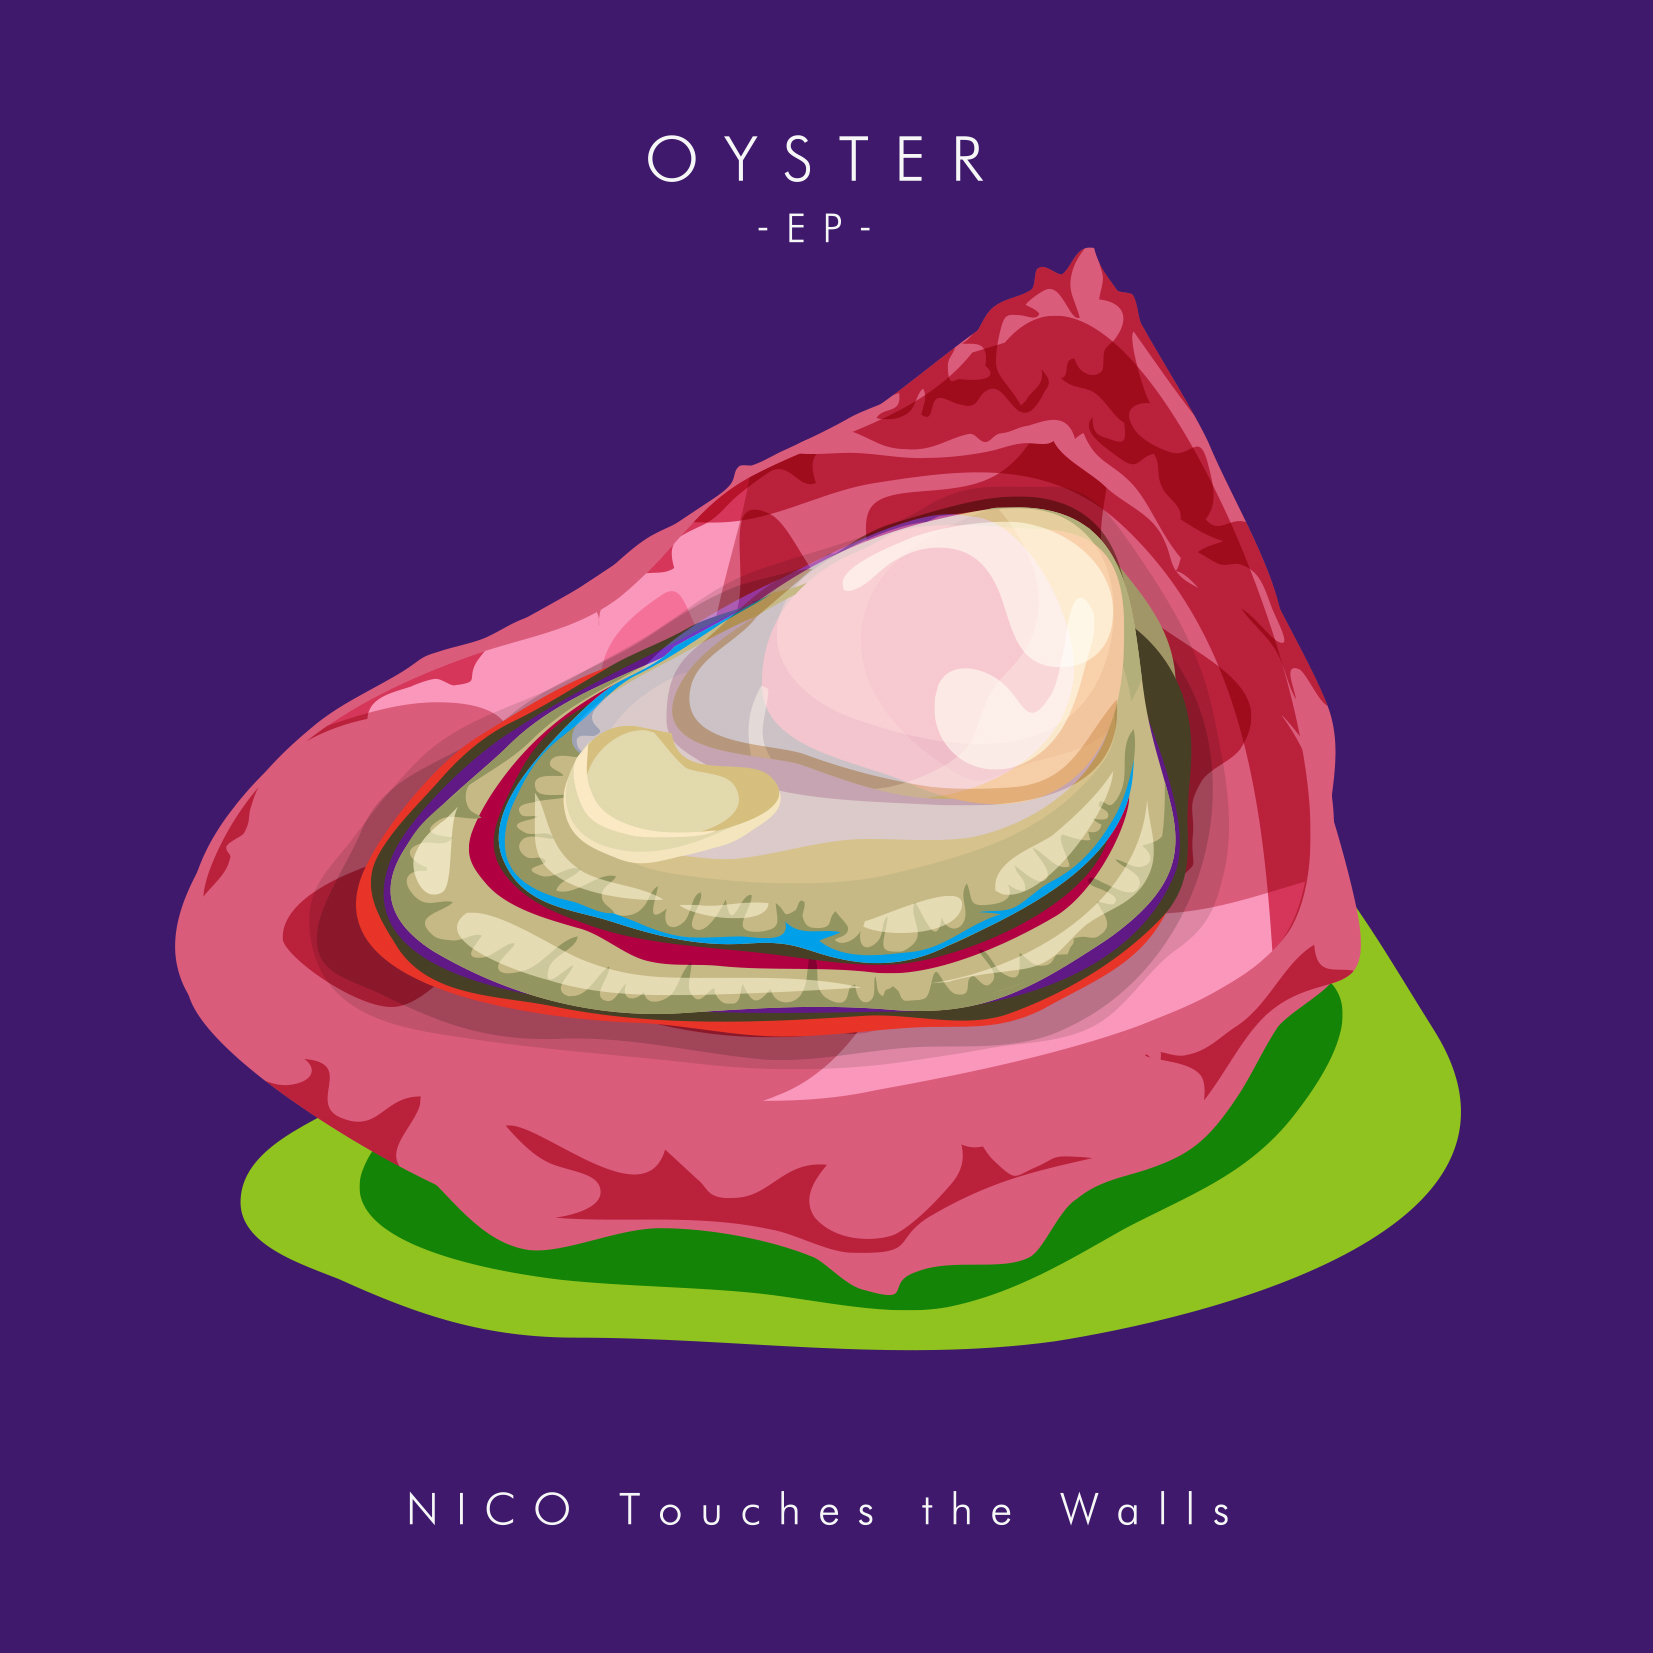 OYSTER -EP-